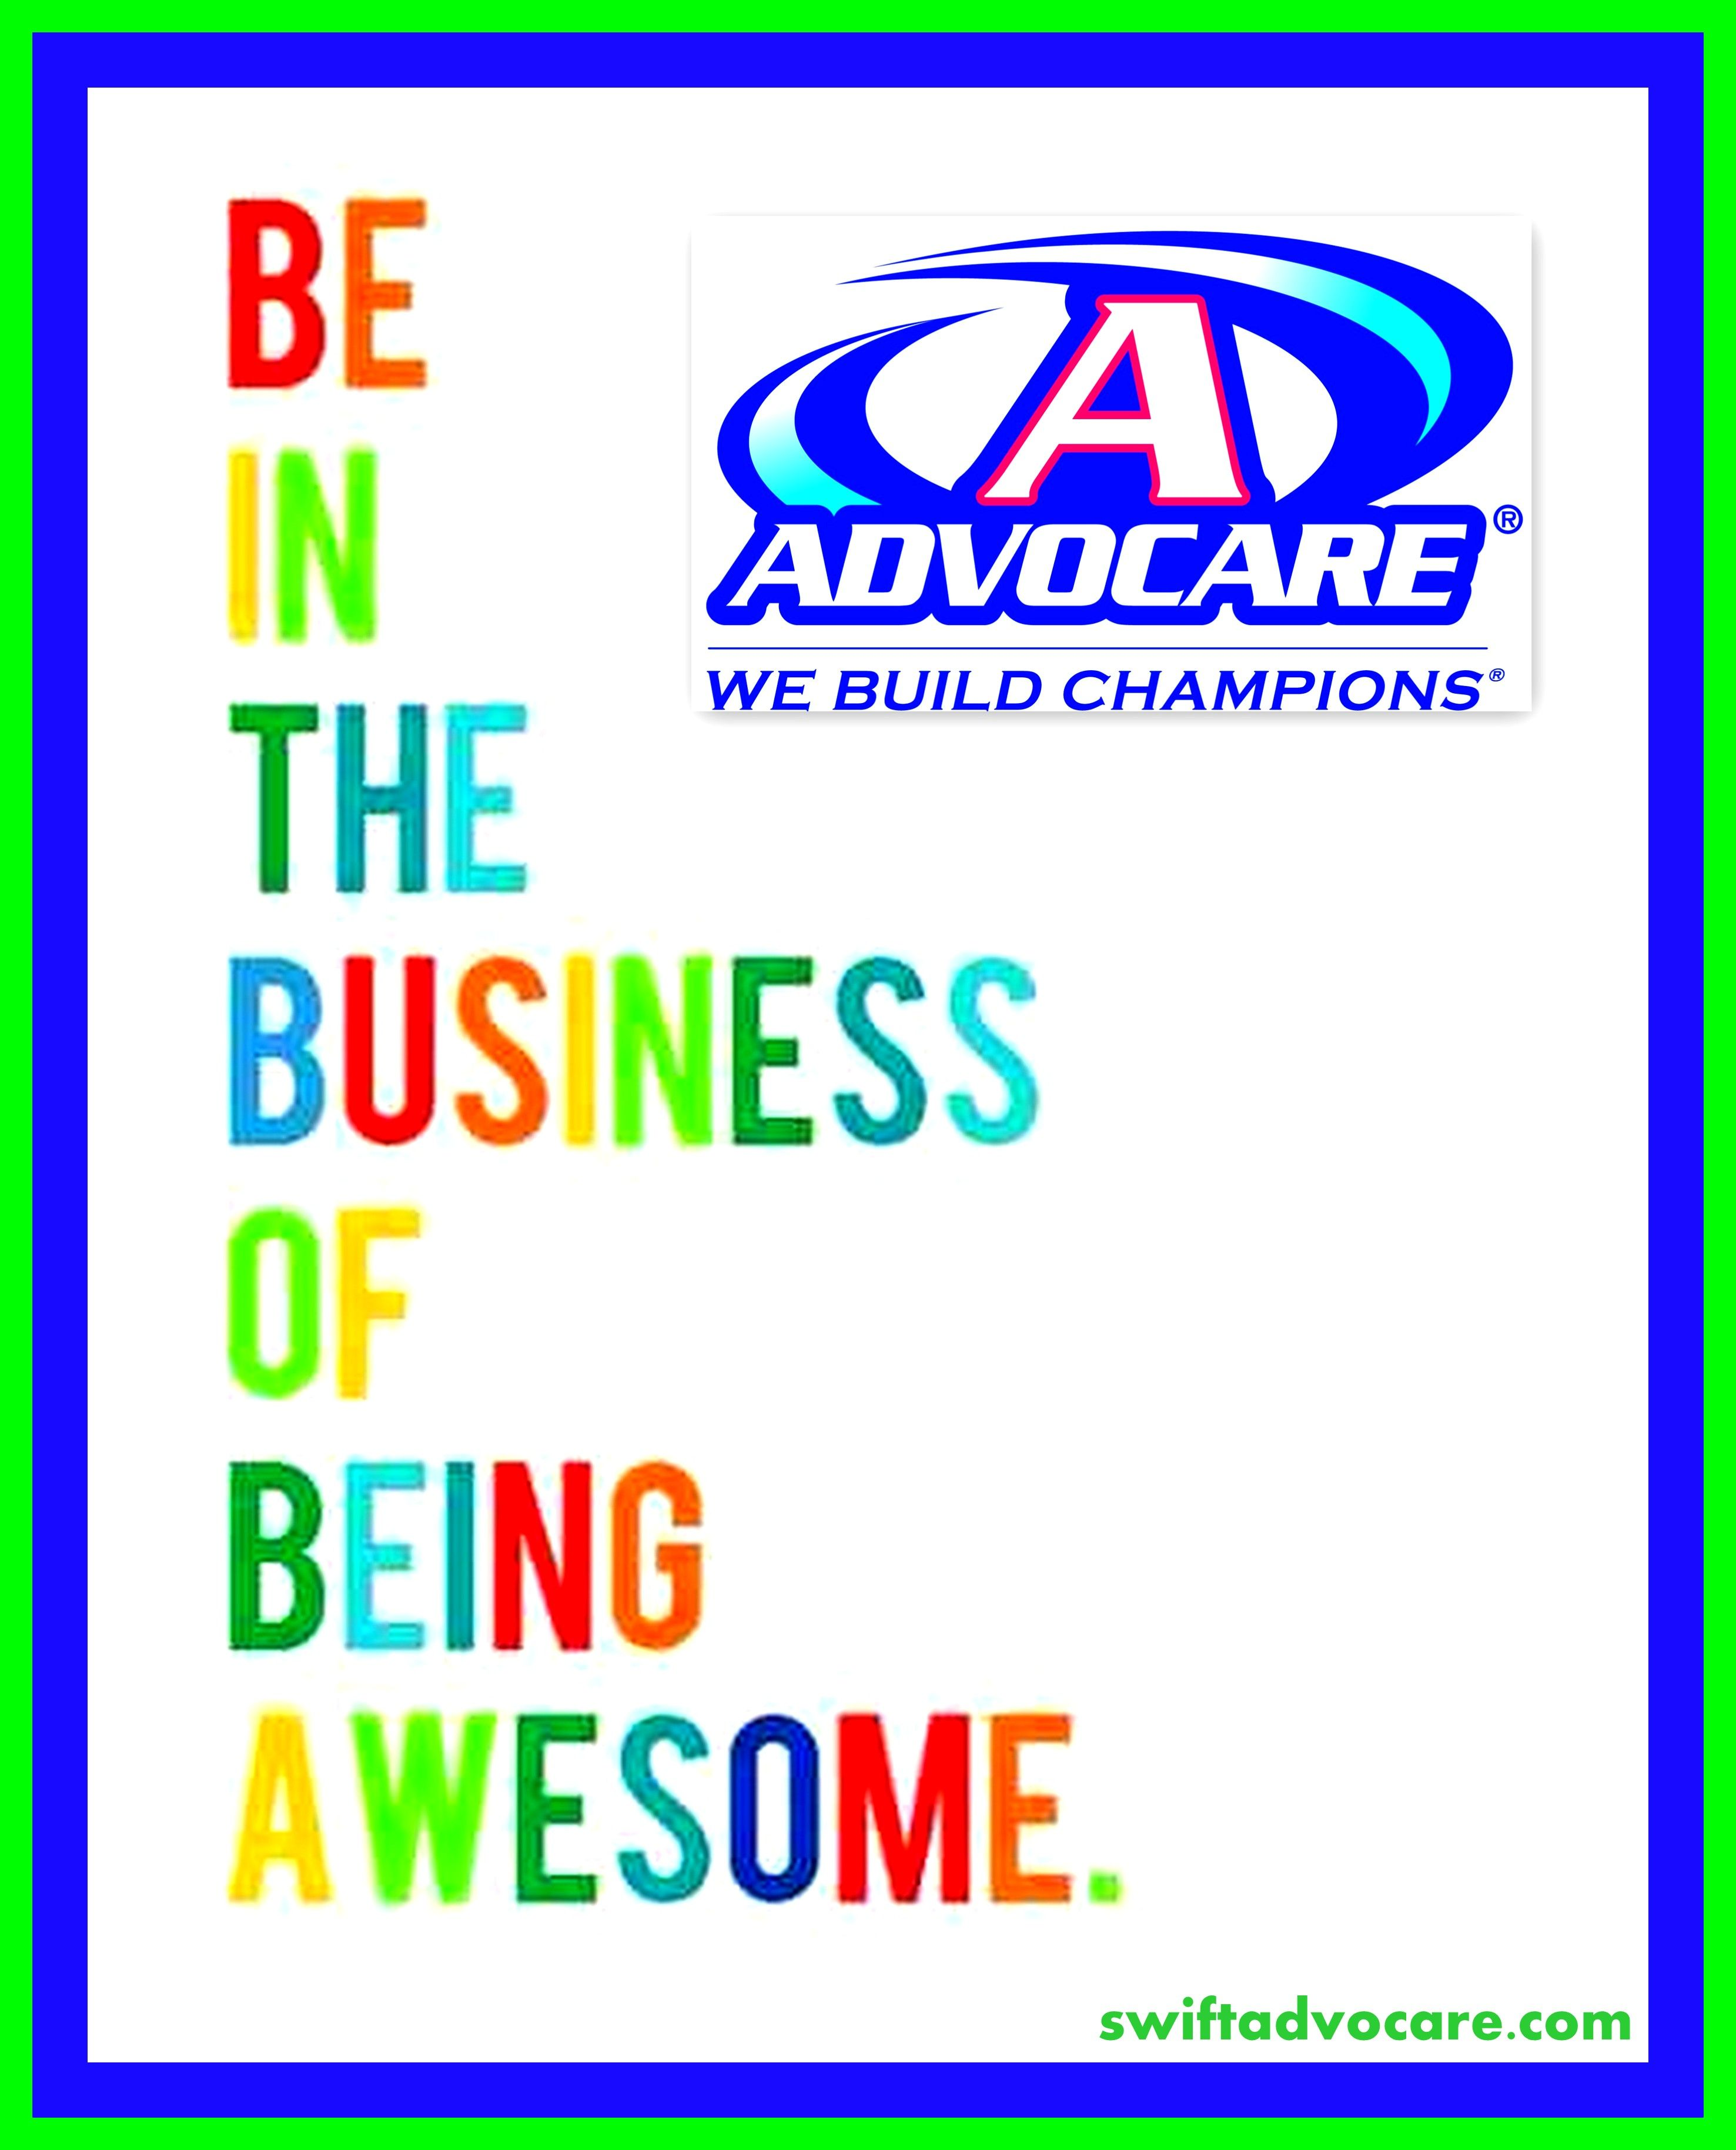 Advocare AWESOME! Visit our AdvoCare East TN Distributor